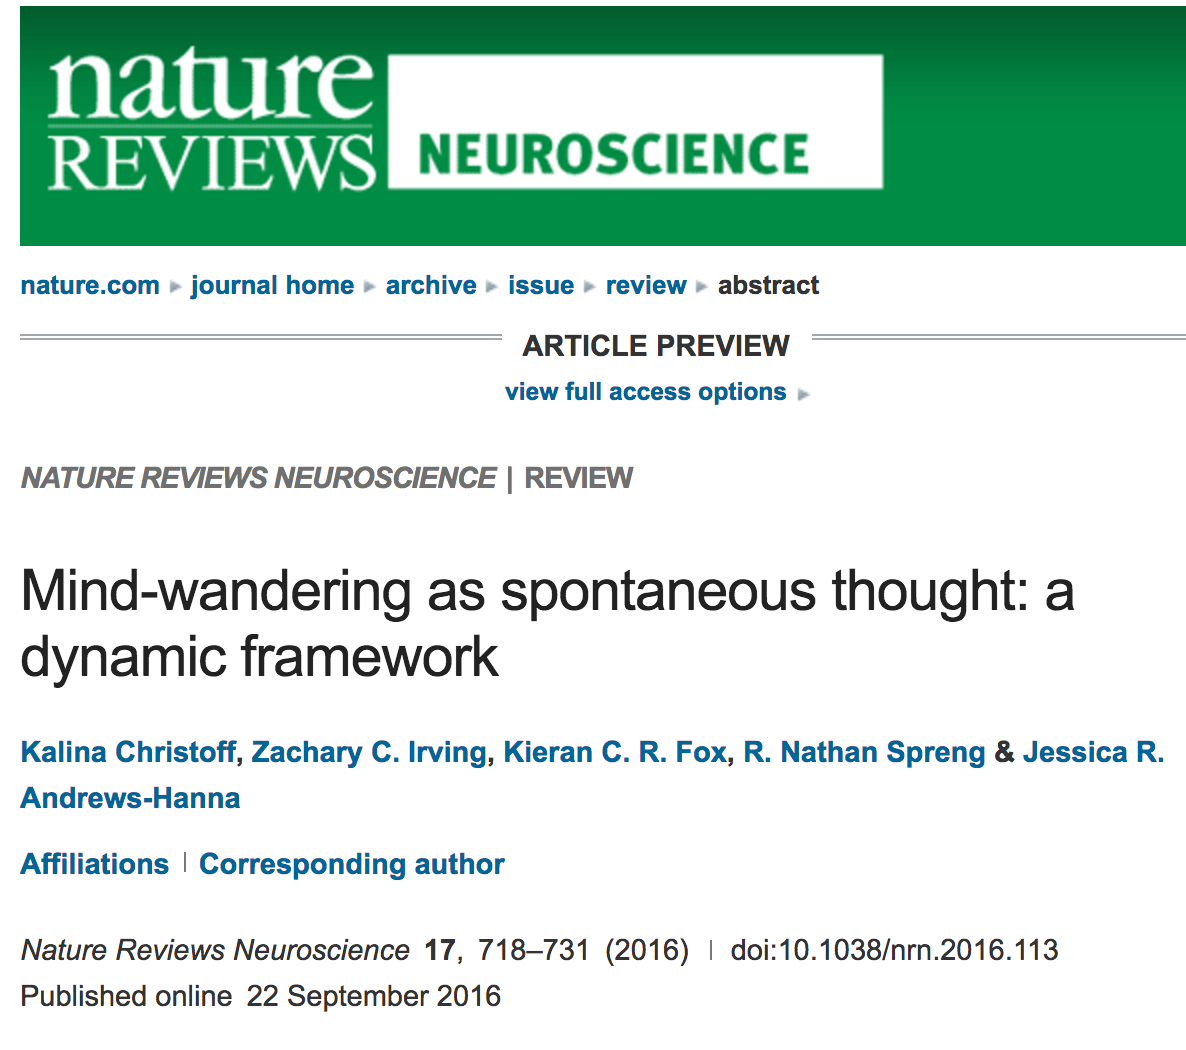 """K Christoff, Z C Irving , K C R Fox, R N Spreng, and J R Andrews-Hanna (2016)"""" Mind-wandering as spontaneous thought: A dynamic framework """". Nature Reviews Neuroscience 17: 718–731. Selected Media Coverage: Wall Street Journal / Huffington Post / Daily Californian / Berkeley News / Science Daily / Medical Daily / UBC News / Hacker News"""